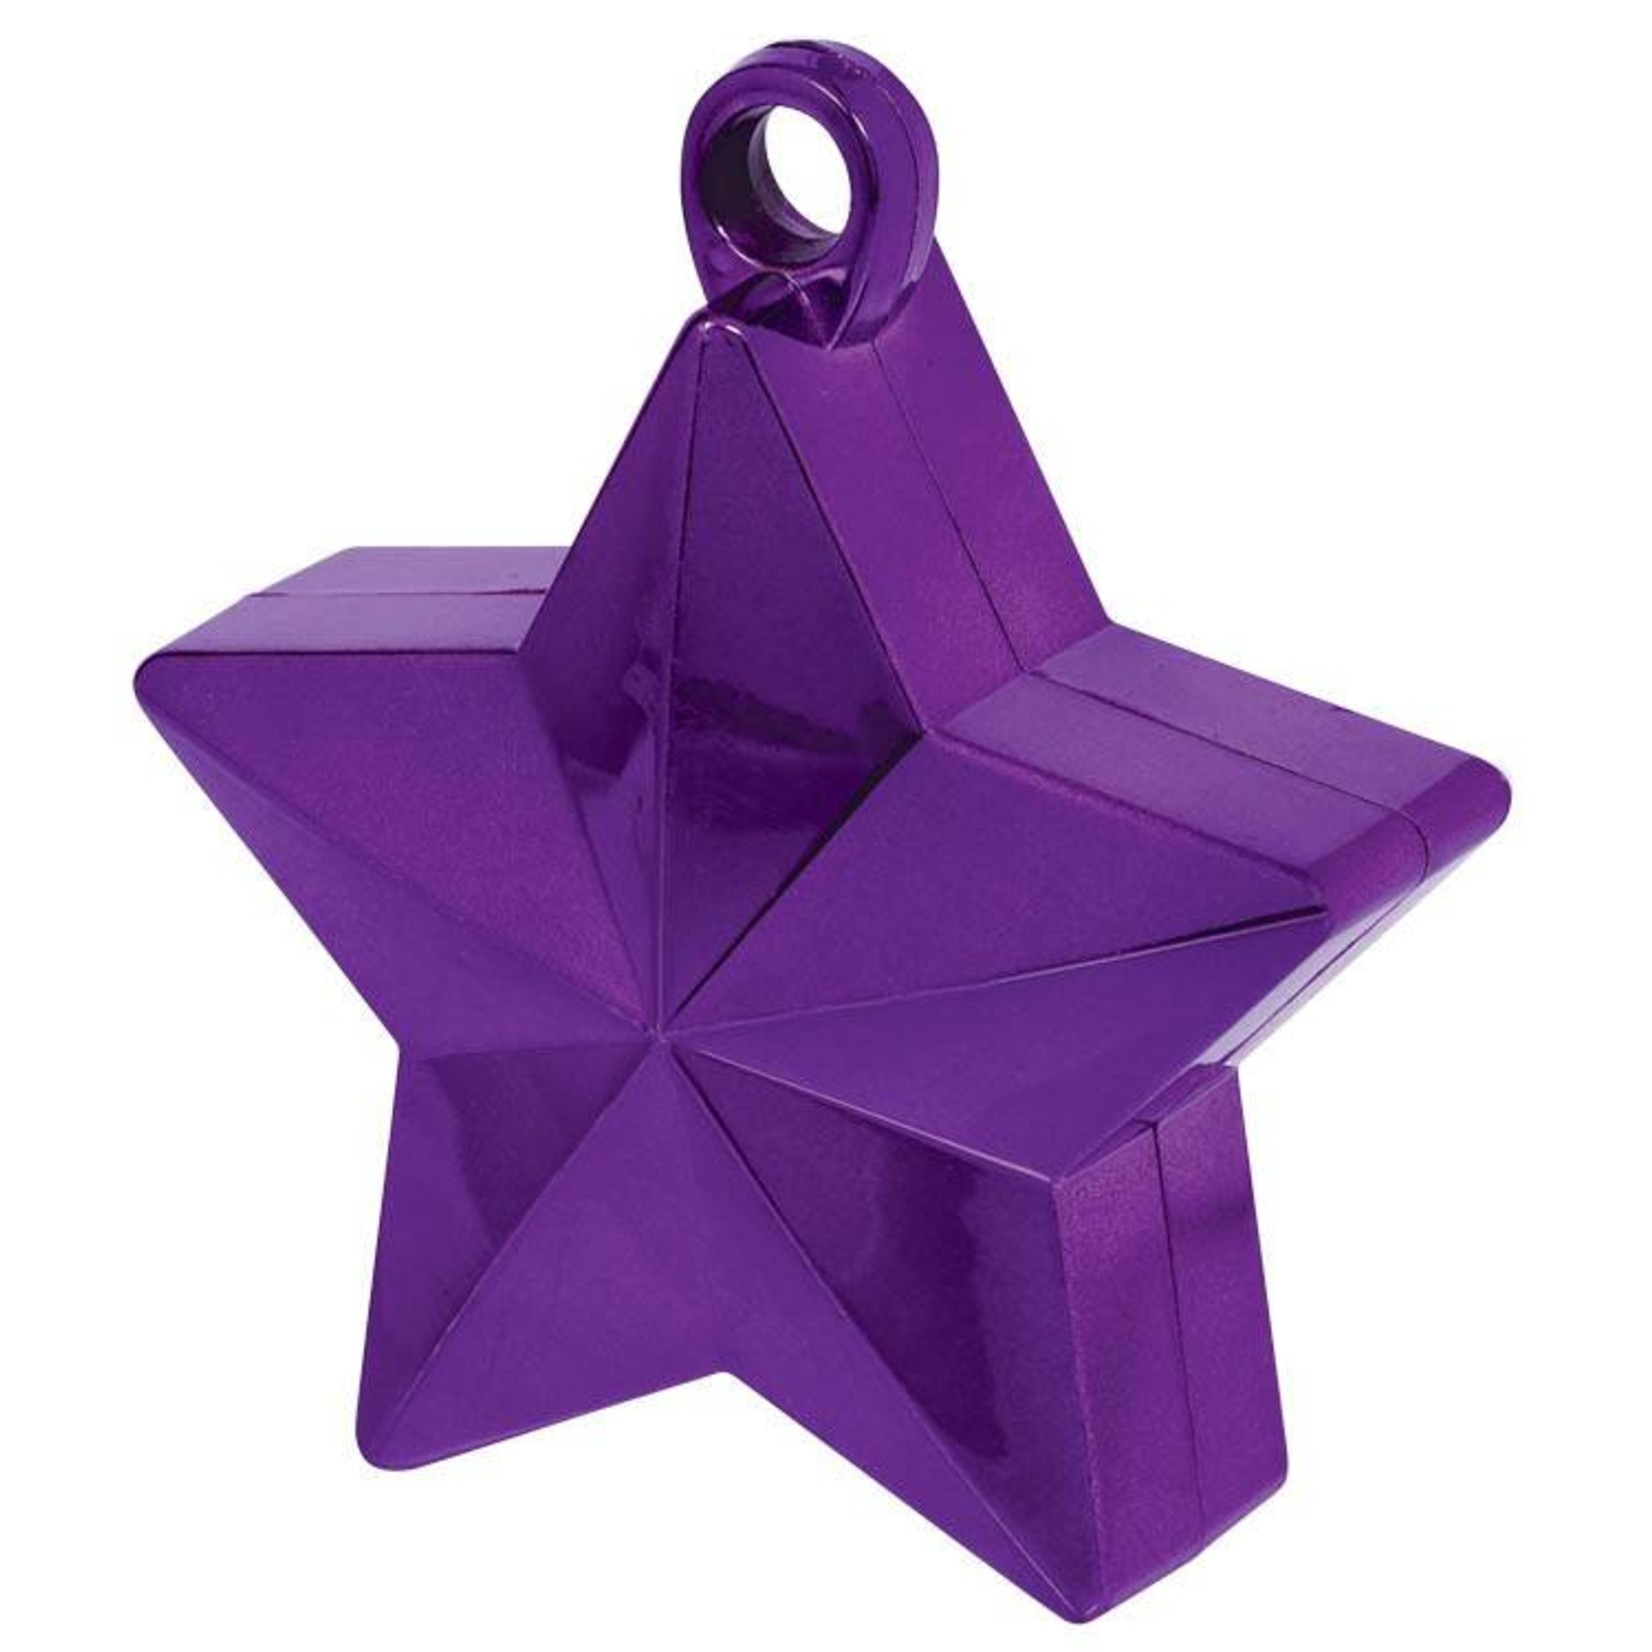 Balloon Weight-Star Electroplated- Purple-6oz